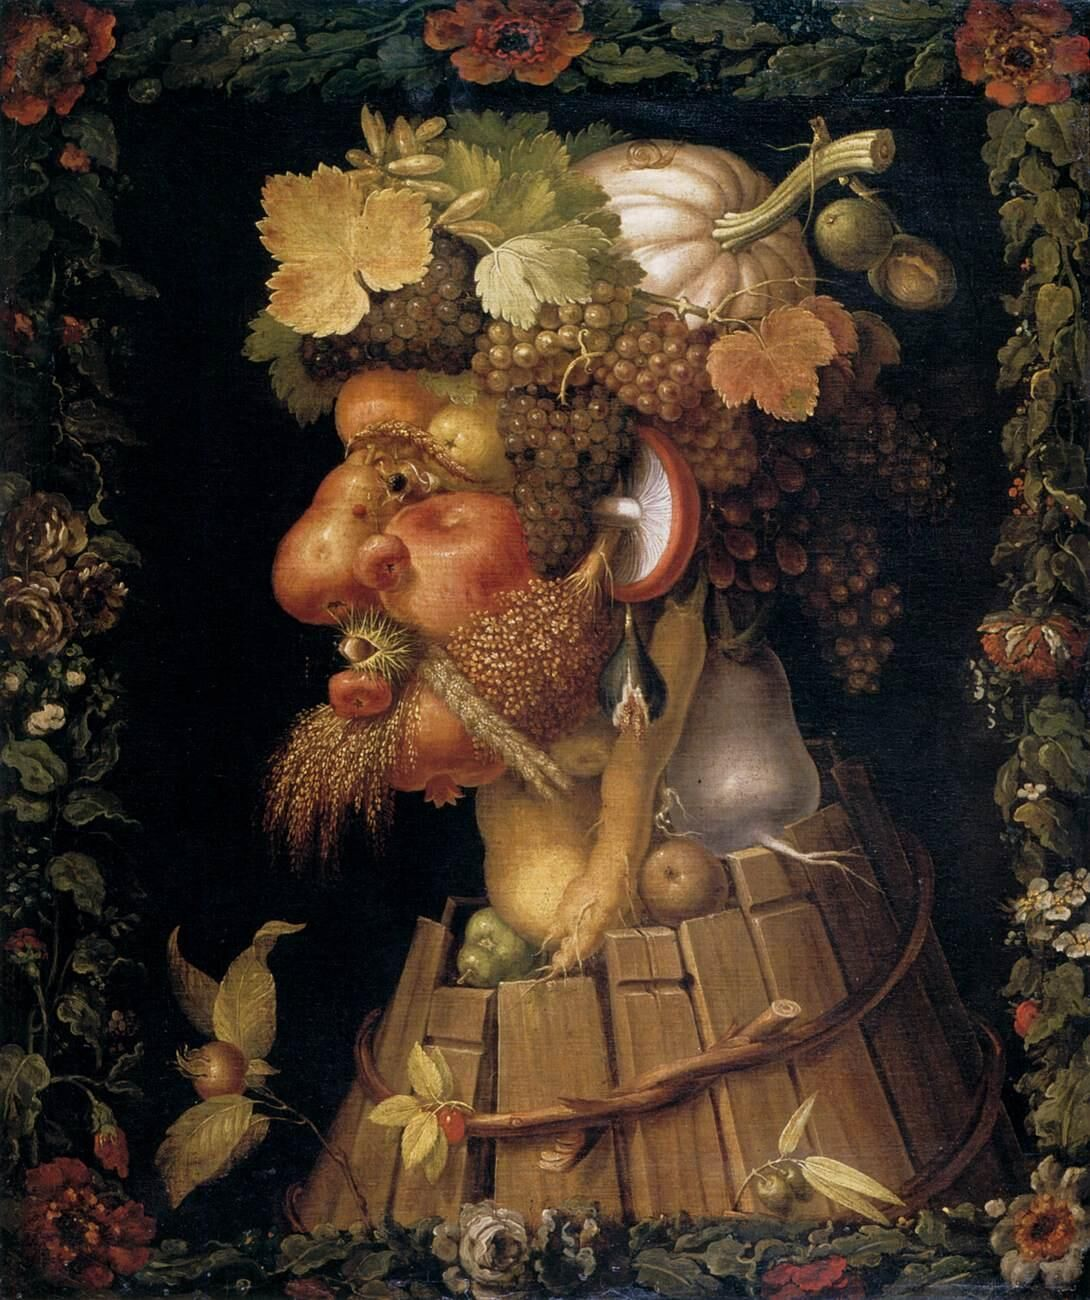 Giuseppe Arcimboldo, Autumn, 1573. Photo via Wikimedia Commons.